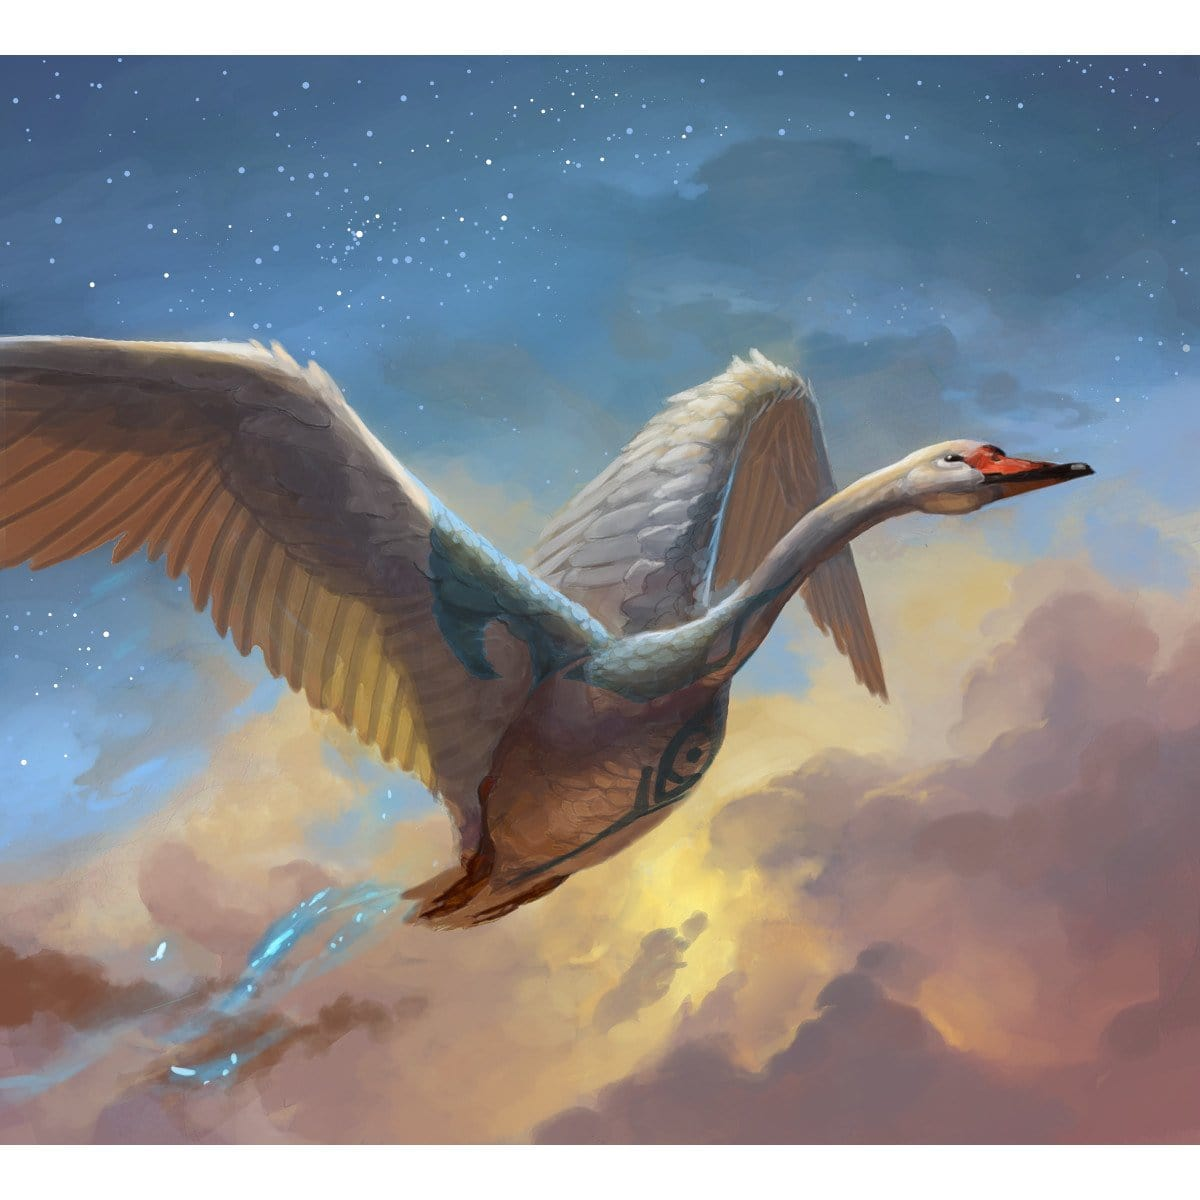 Bird Token Print - Print - Original Magic Art - Accessories for Magic the Gathering and other card games